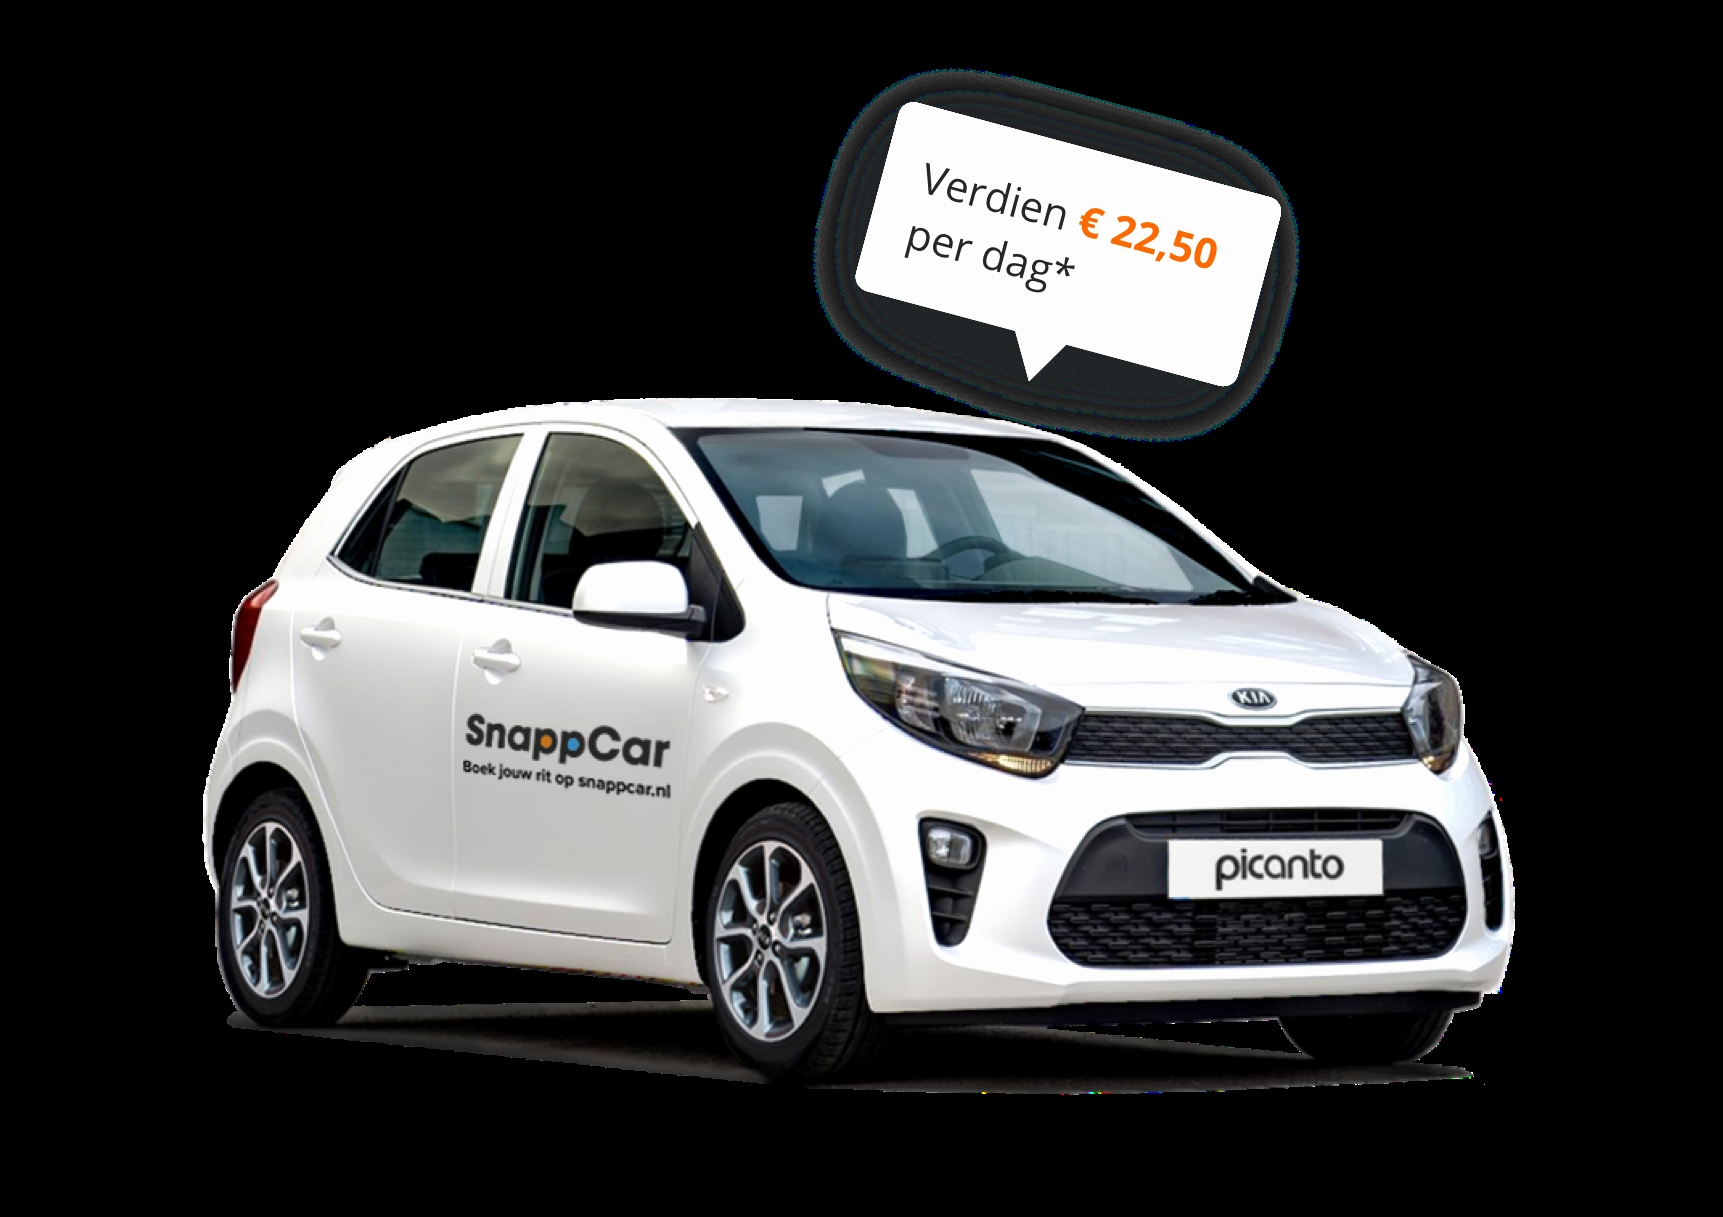 Engel Bilder Kostenlos Downloaden Best Kia Picanto Private Lease Voor Maar € 173 P M